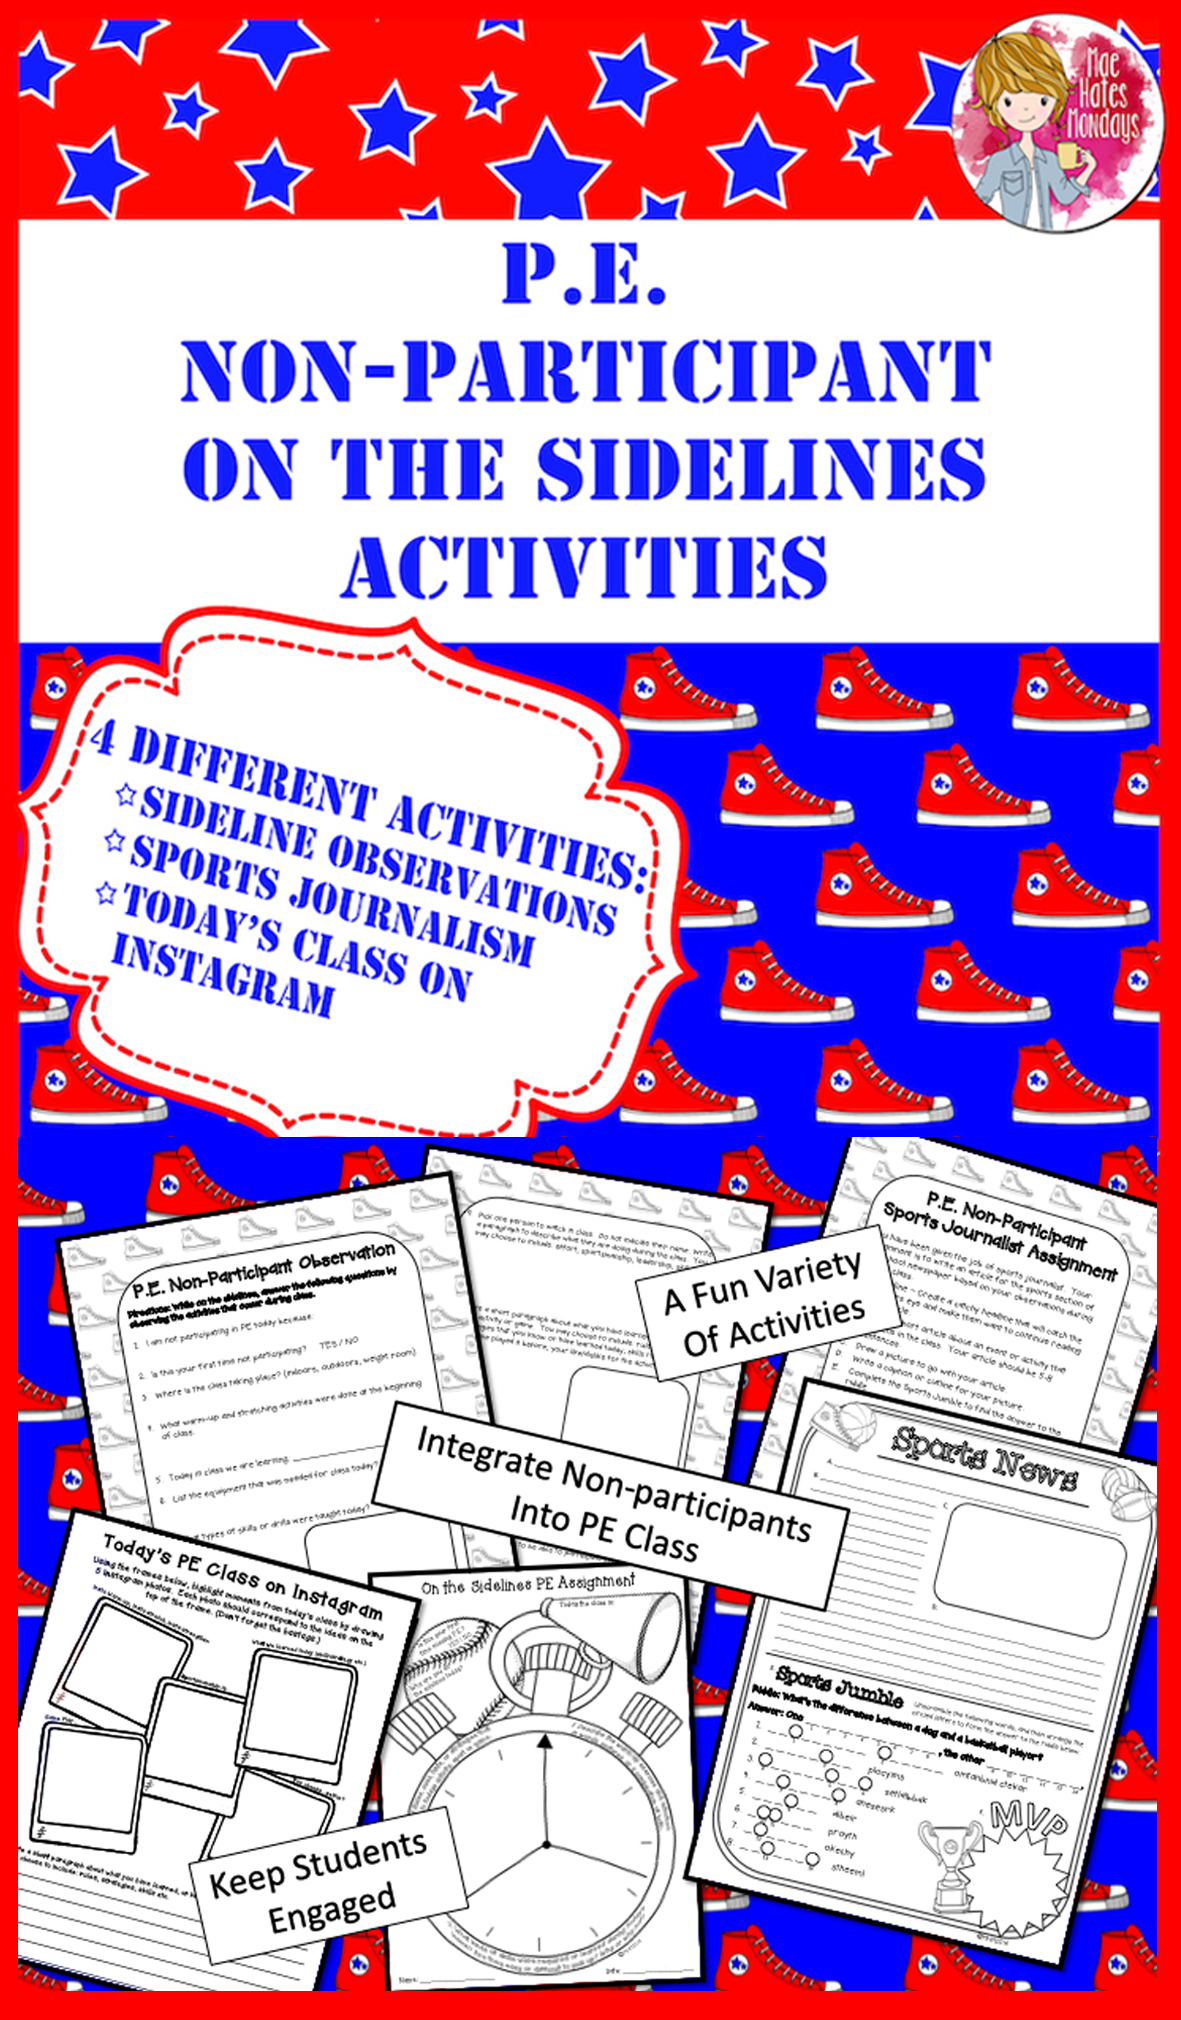 Pe Non Participant On The Sidelines Activity Pack